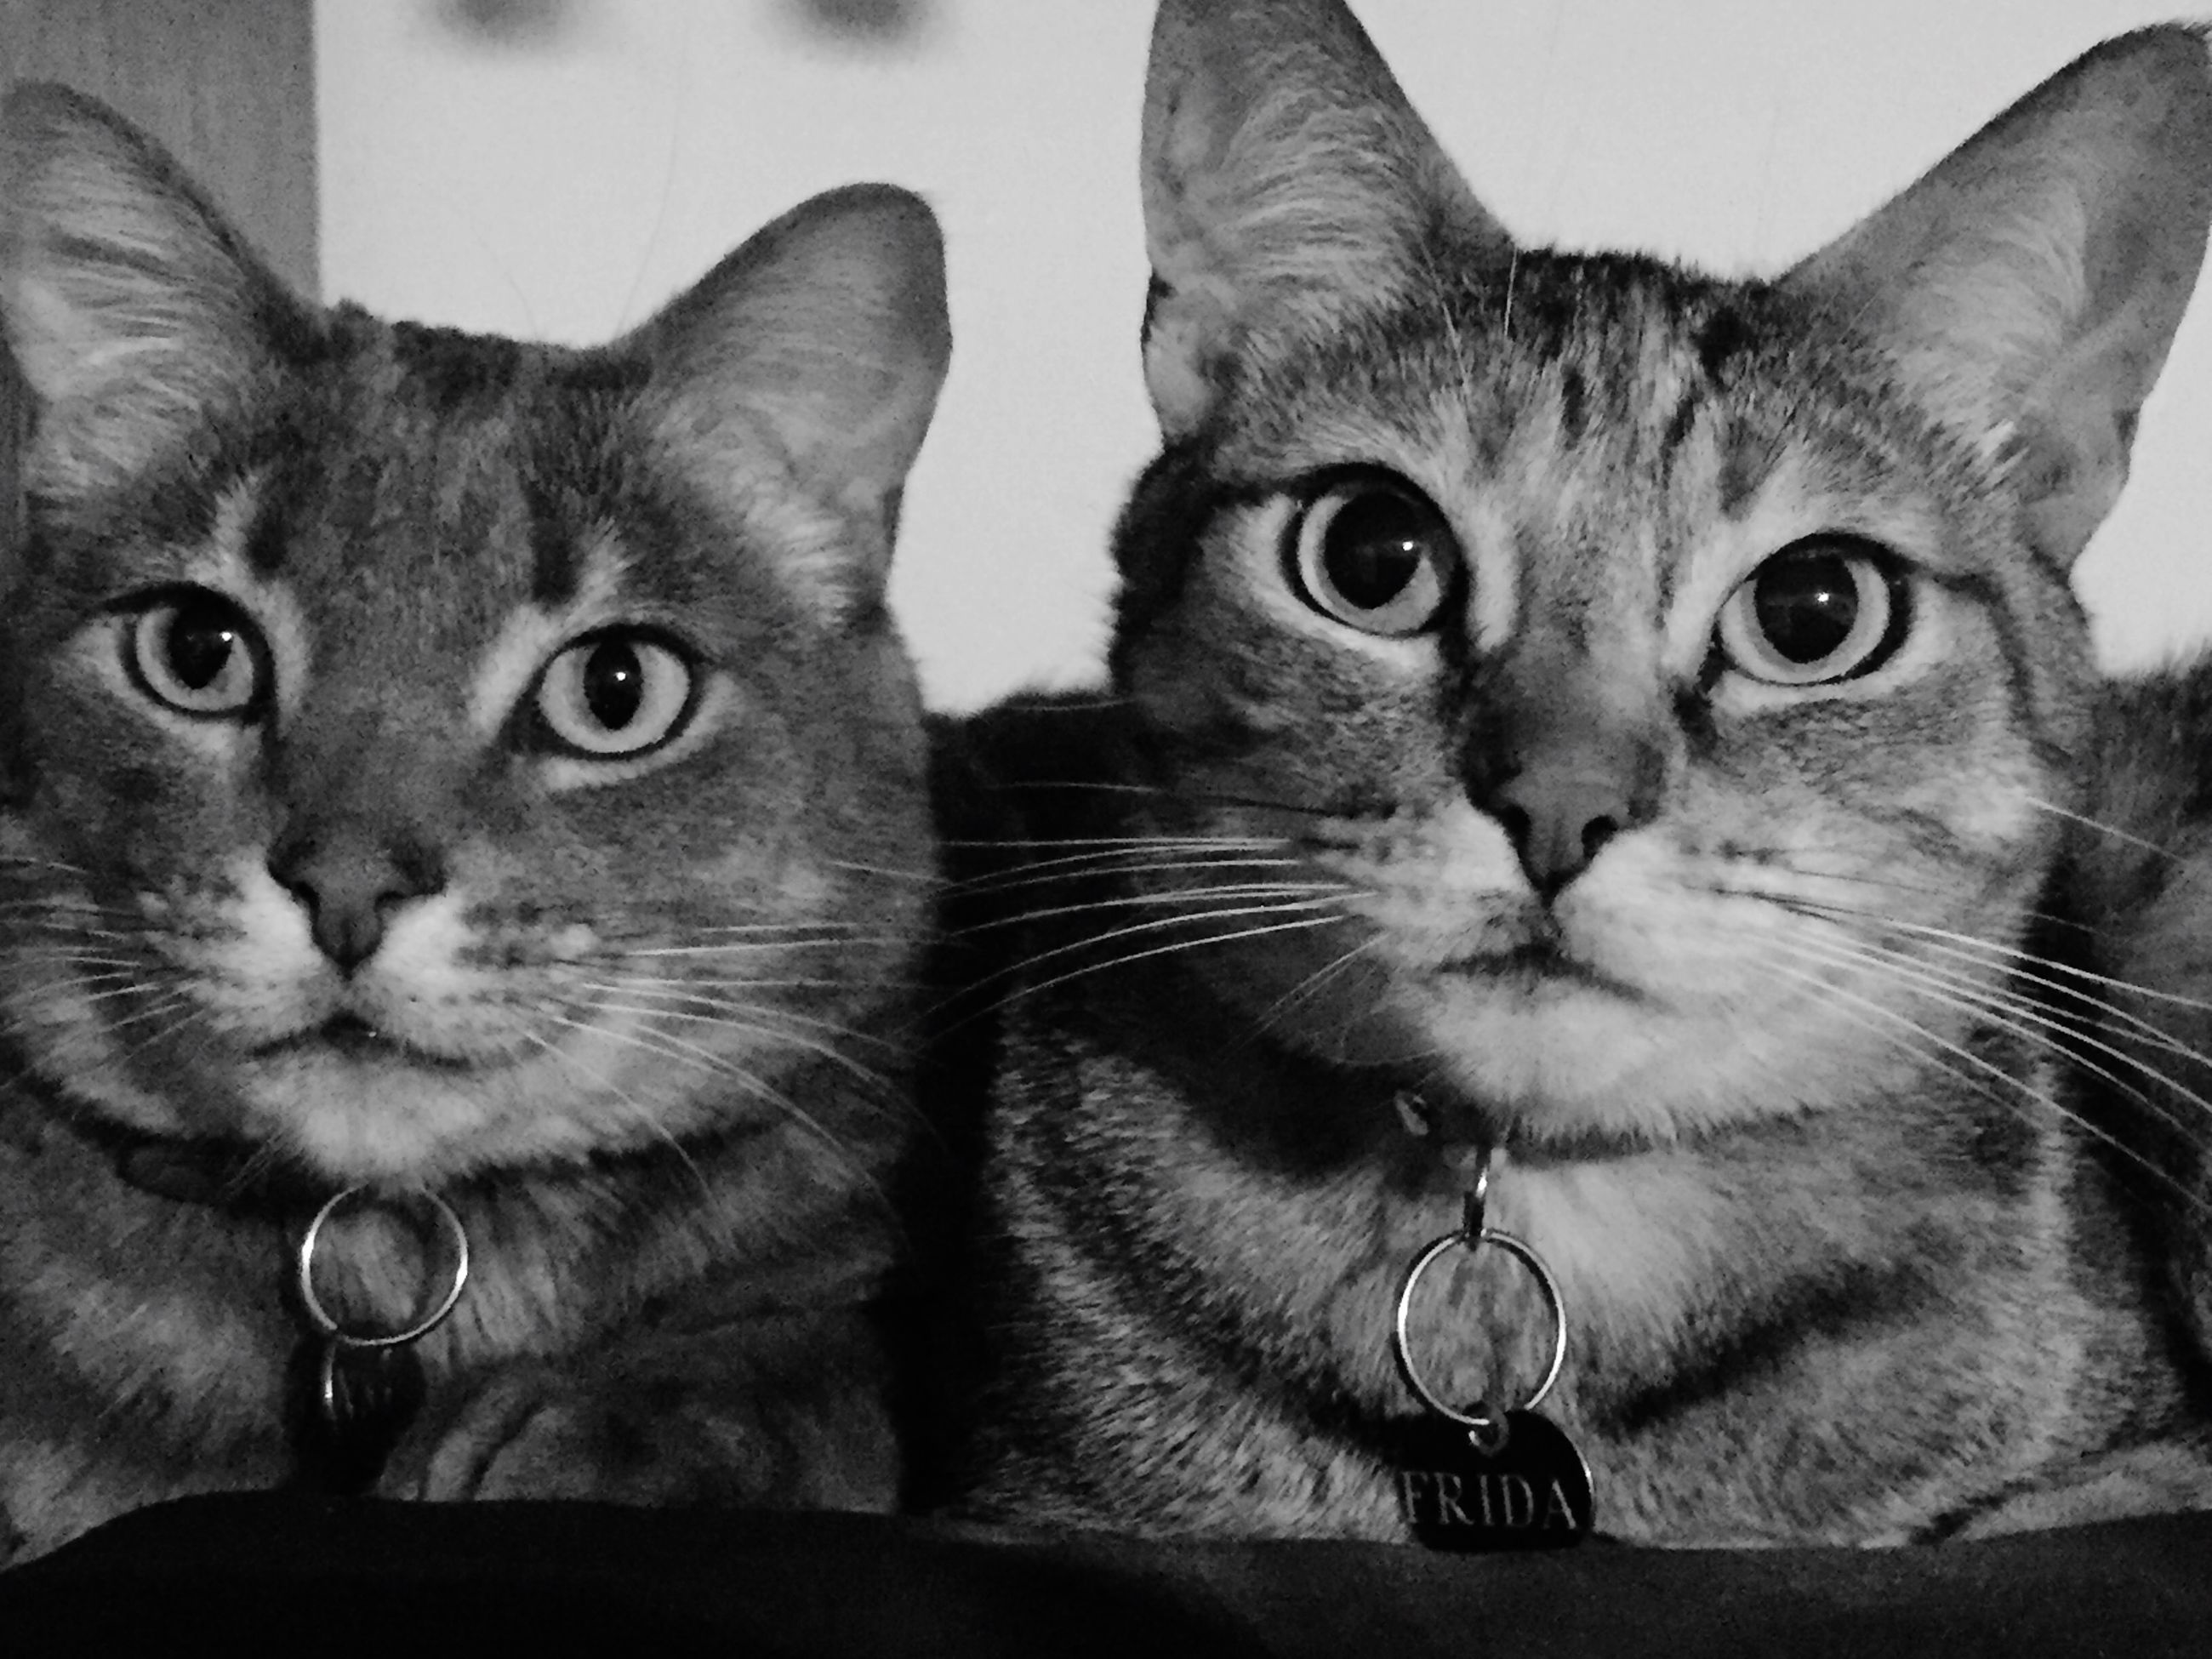 domestic, pets, cat, domestic cat, mammal, domestic animals, feline, vertebrate, portrait, group of animals, looking at camera, indoors, two animals, whisker, close-up, no people, animal eye